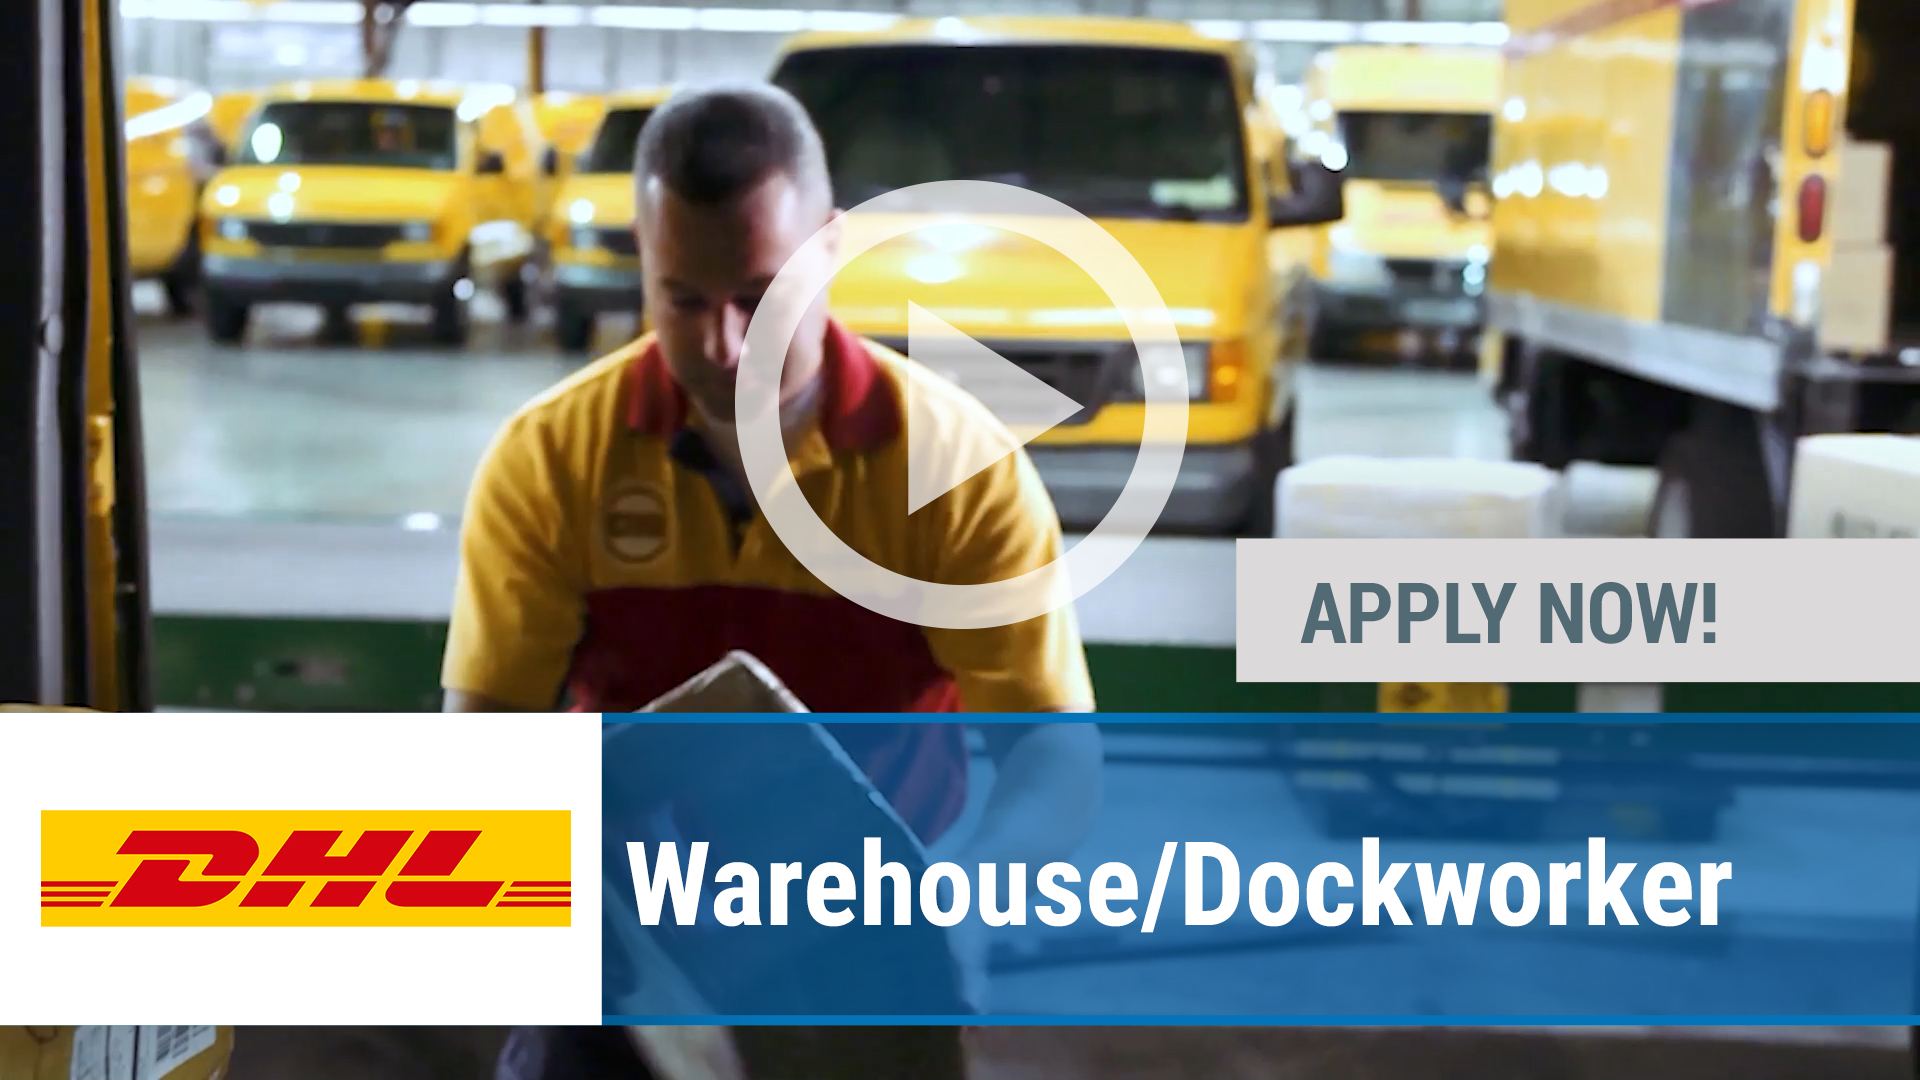 Watch our careers video for available job opening Warehouse_Dockworker in Mt Vernon, NY, USA